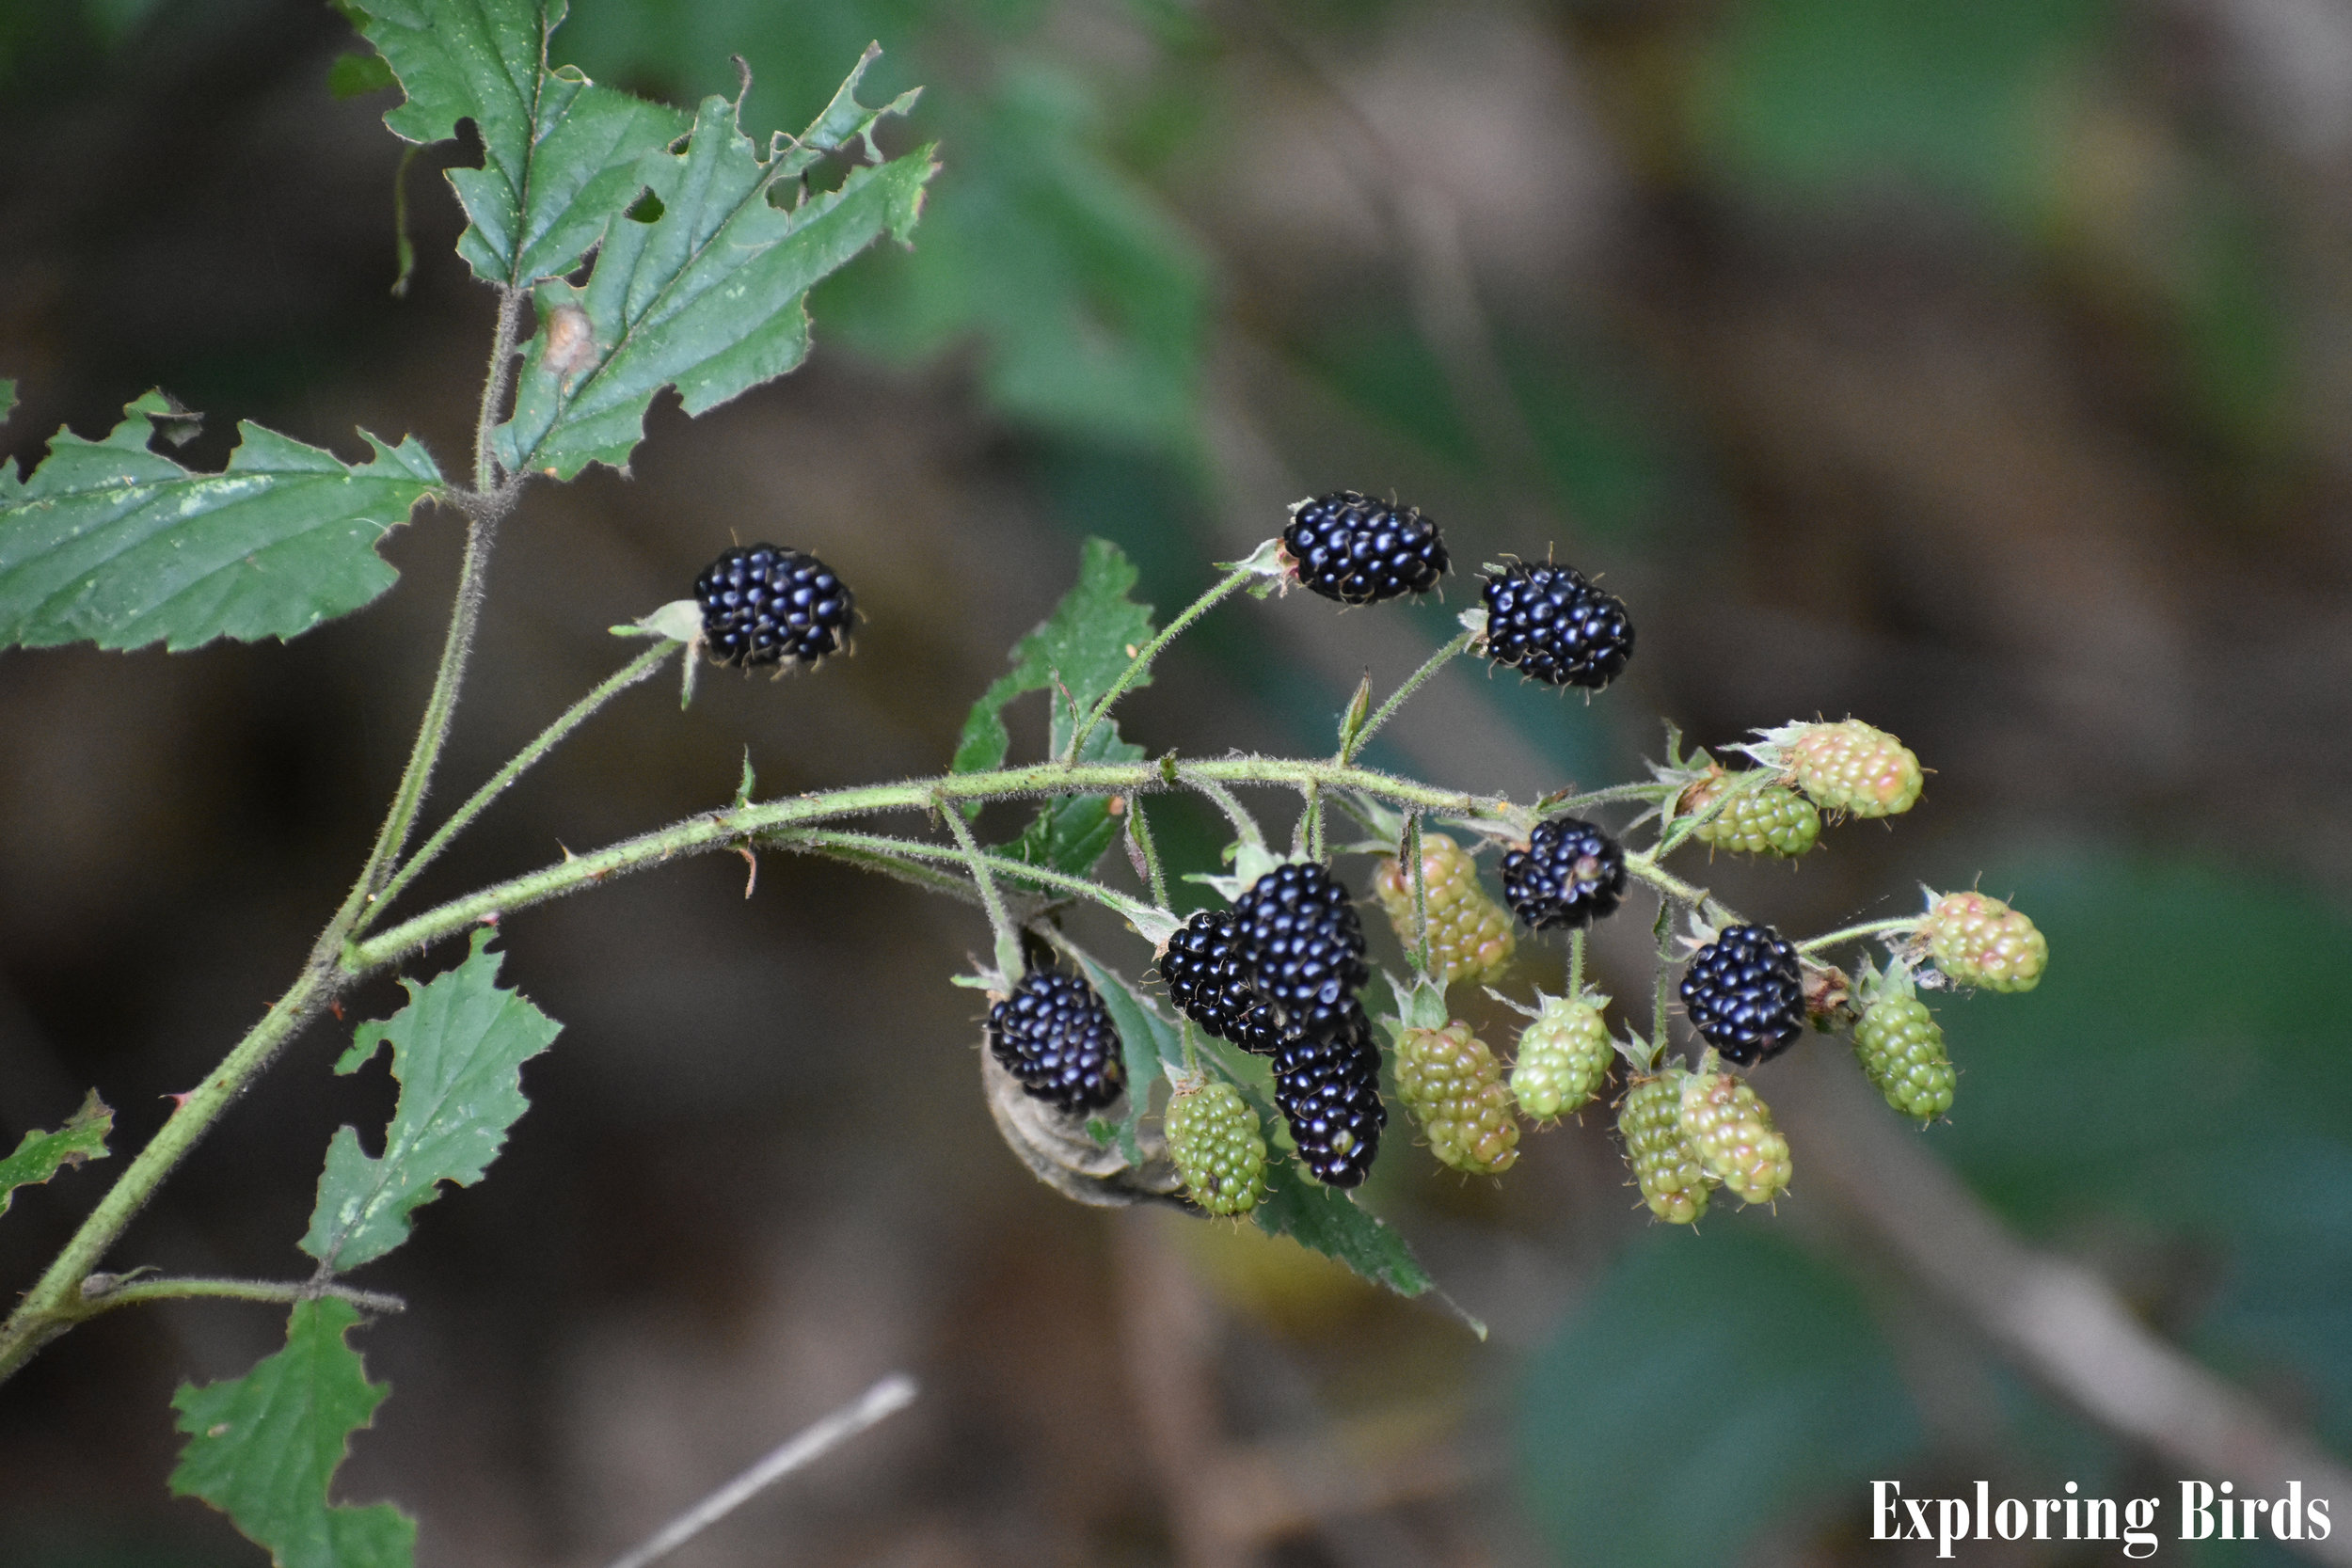 Wild Blackberry is one of the best plants for attracting birds